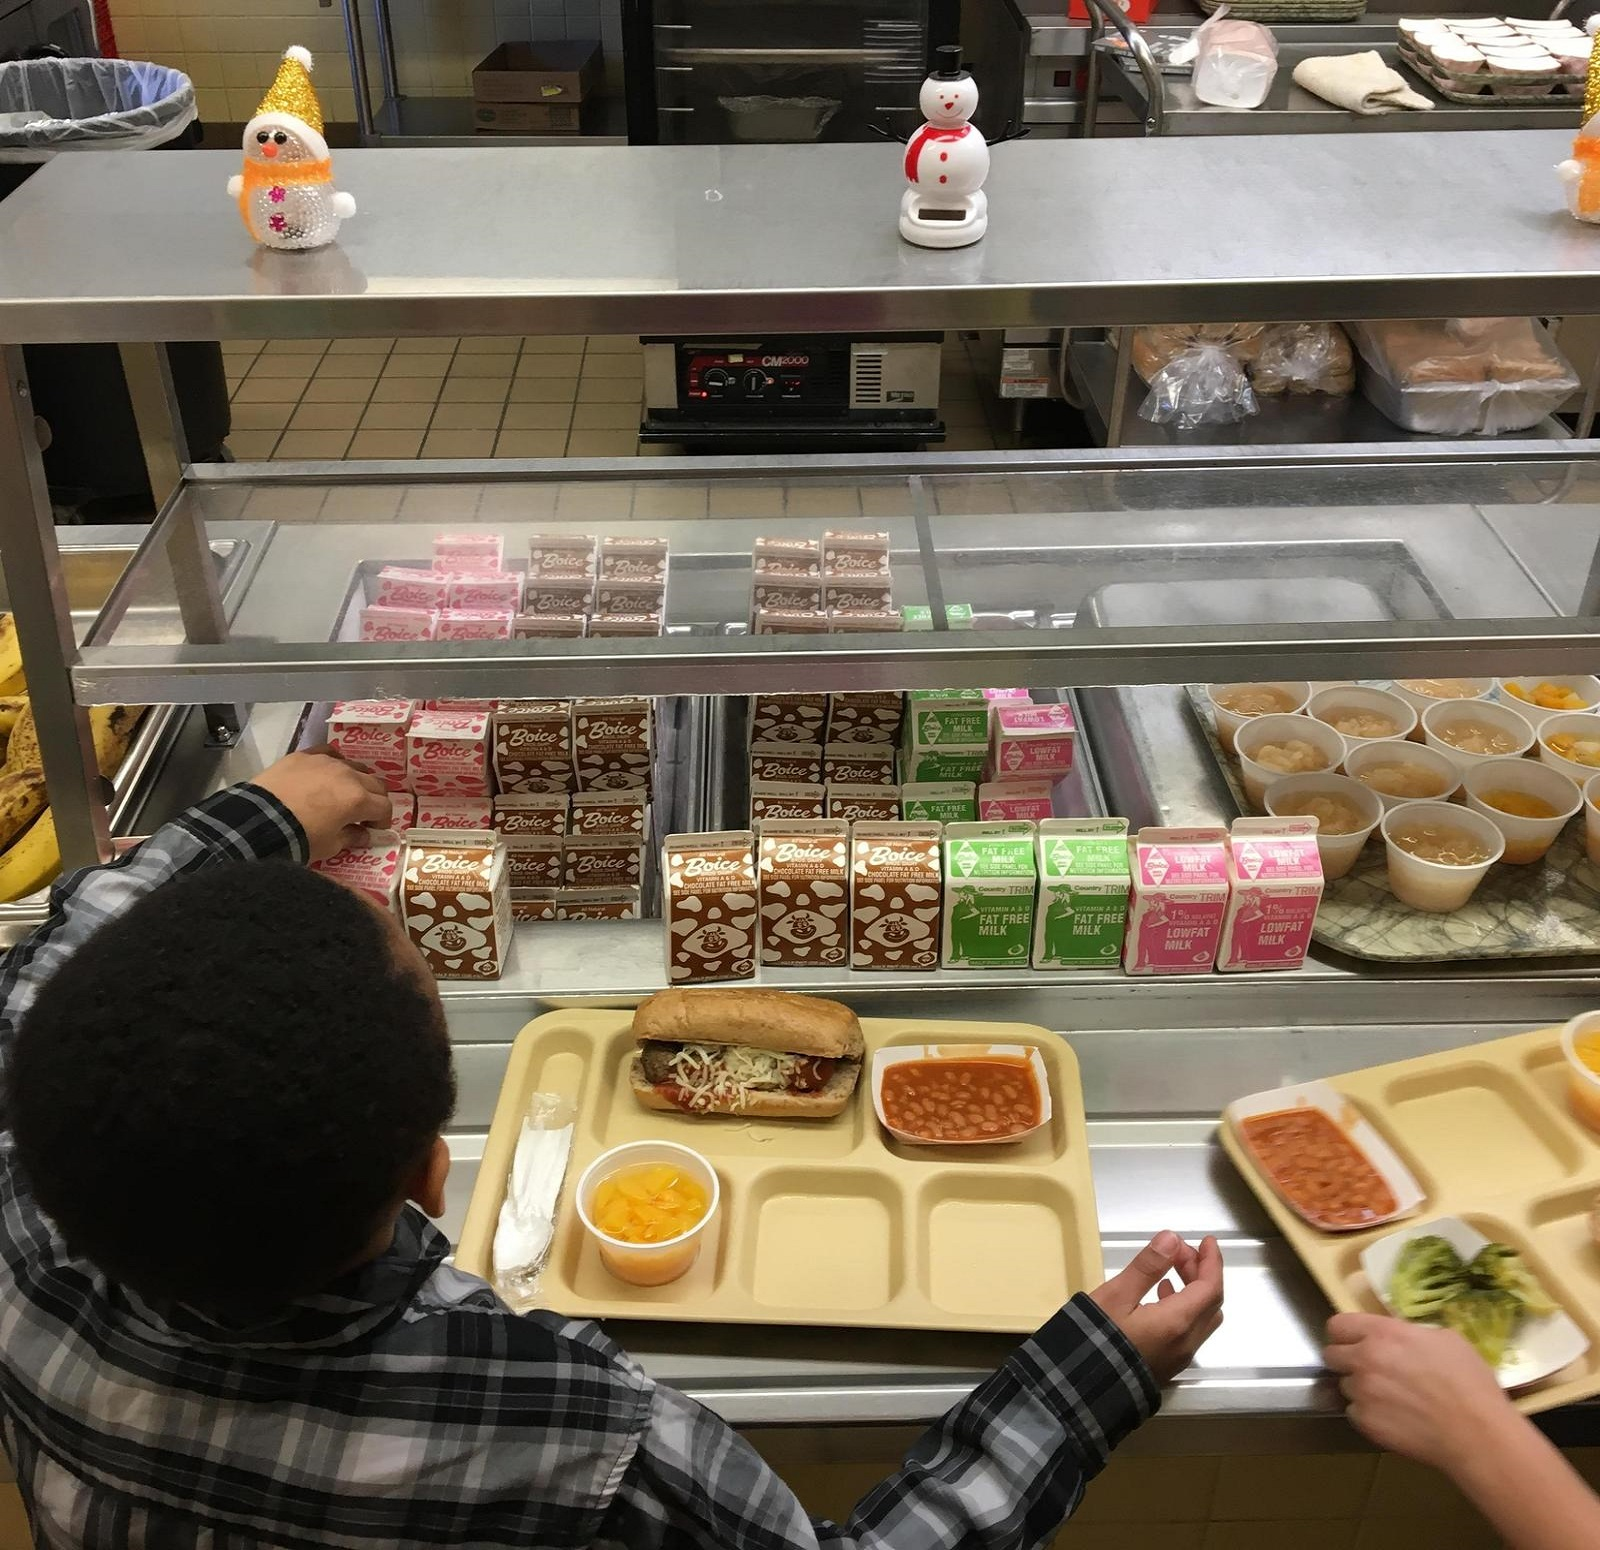 Trump Admin Proposes Rollbacks to School Lunch Programs